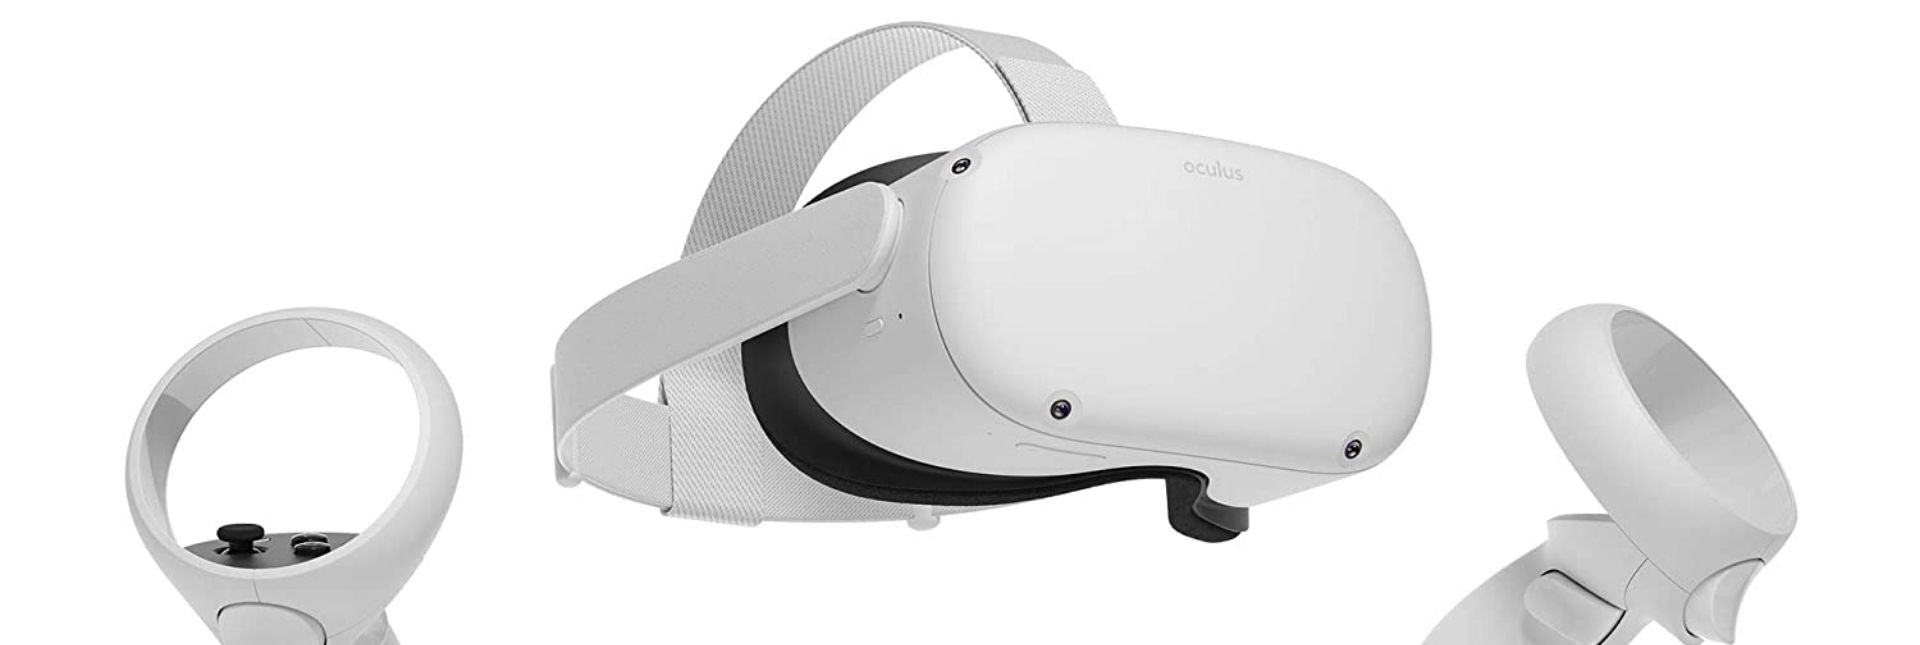 Rift S Prices Cut Down To $300, But Should You Buy It Or The Quest 2?